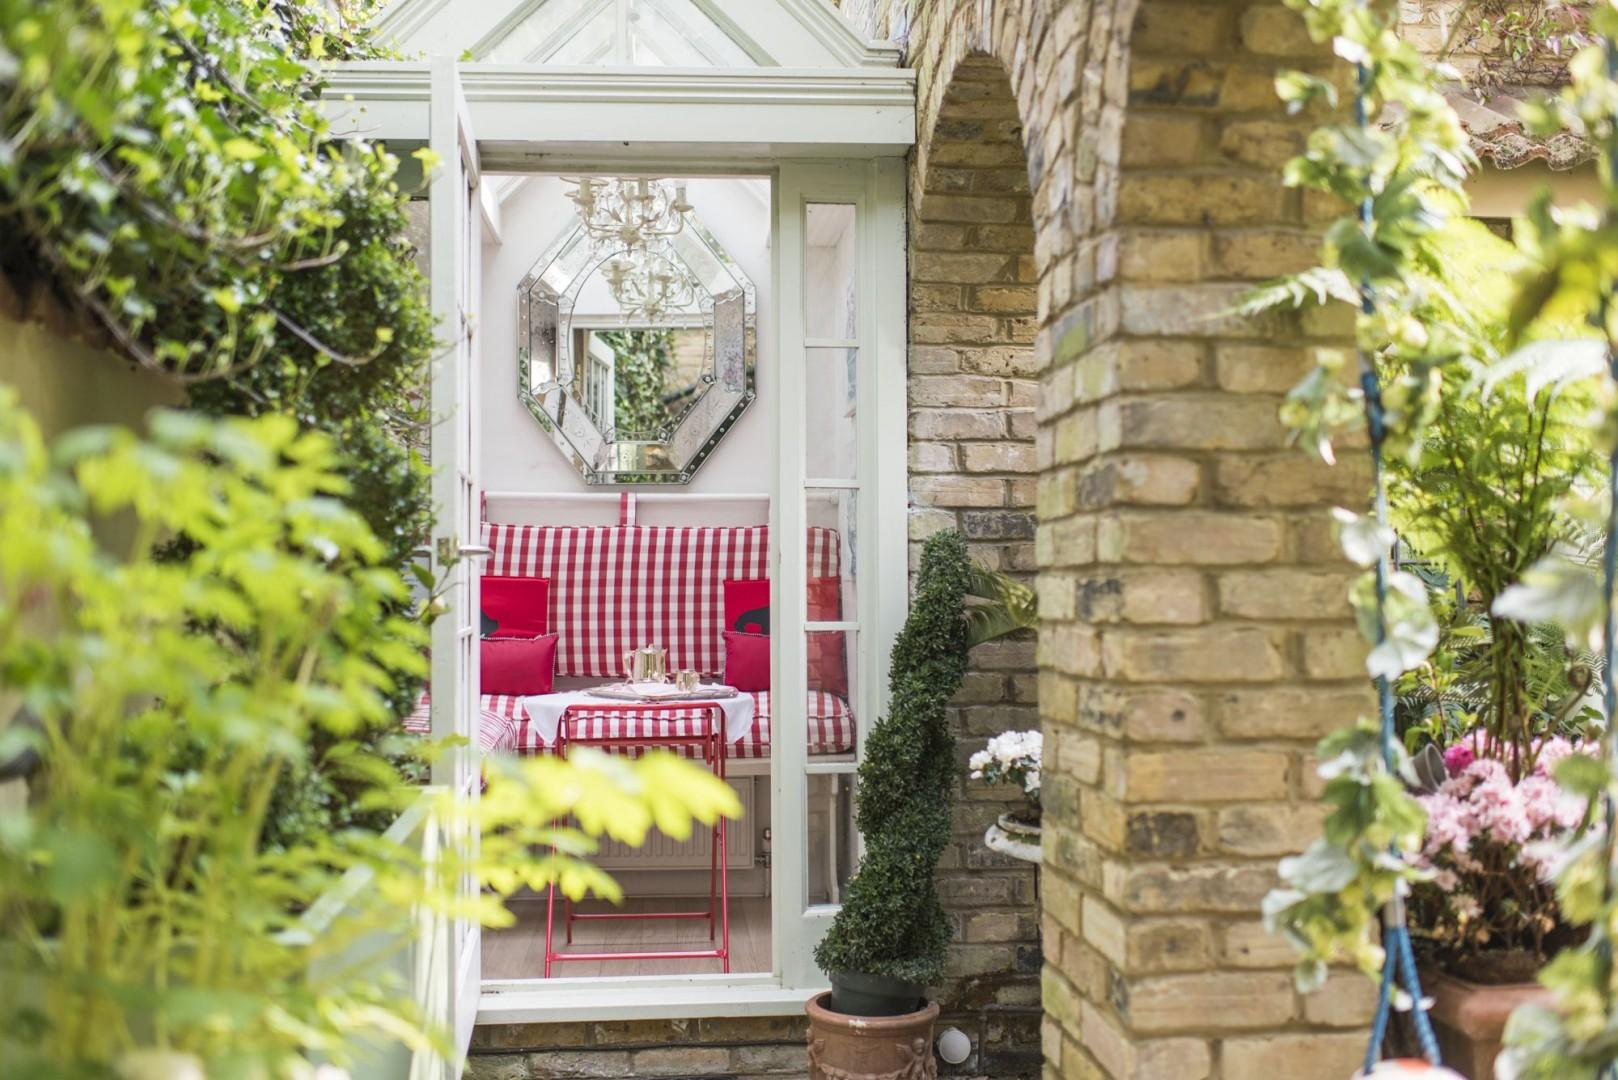 The door to the garden looks directly onto the delightful glass conservatory with chairs and table